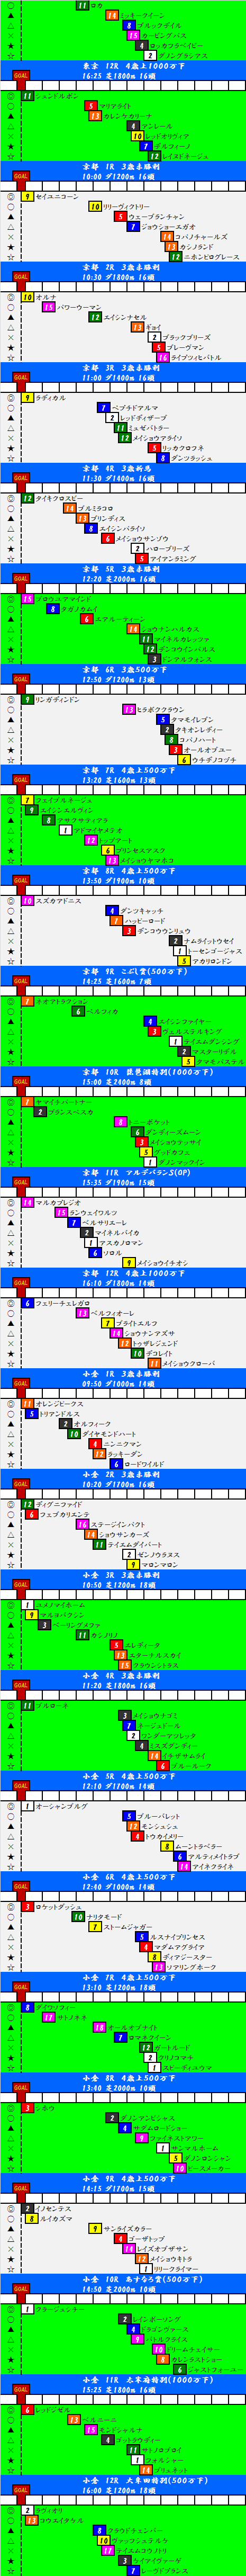 2015021402.png